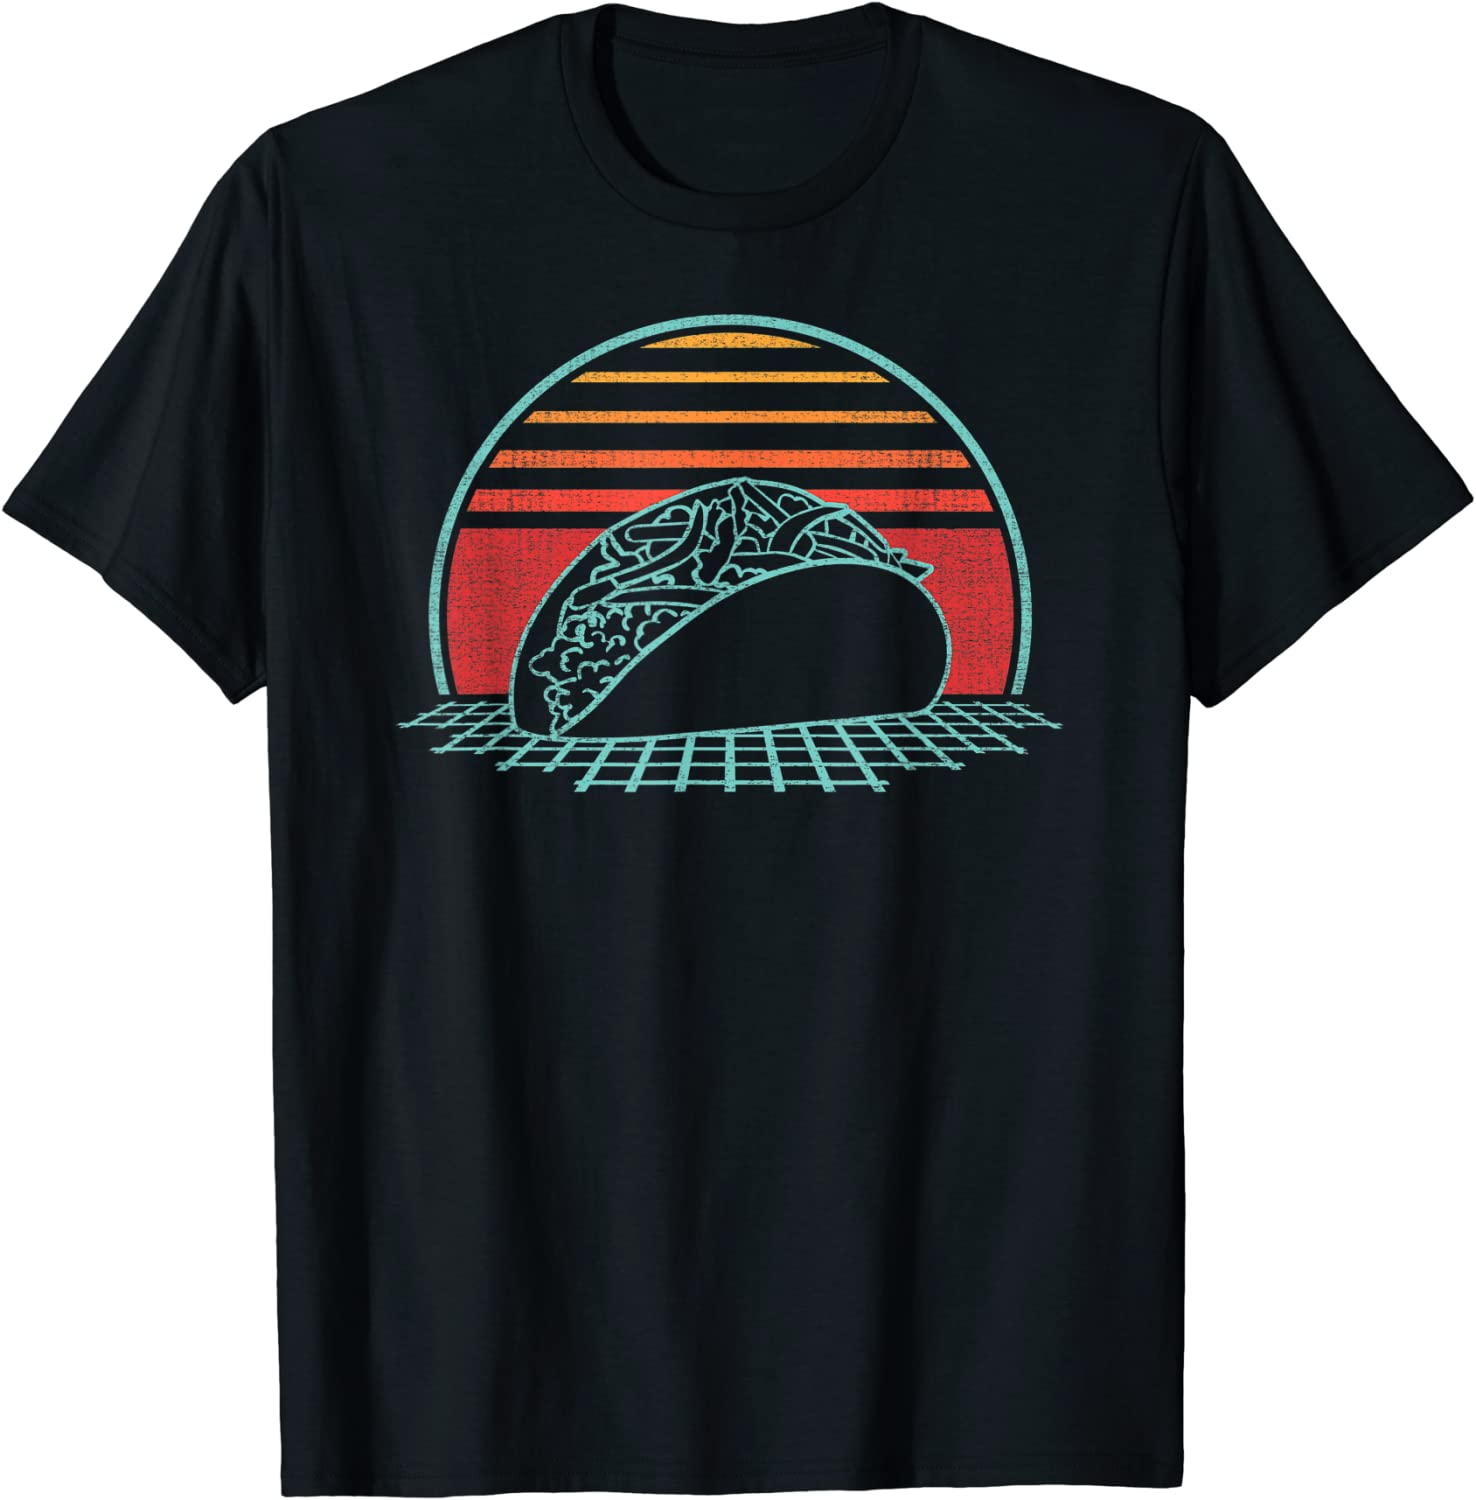 Taco Retro Mexican Food Tuesday Vintage 80s Style Gift T-Shirt